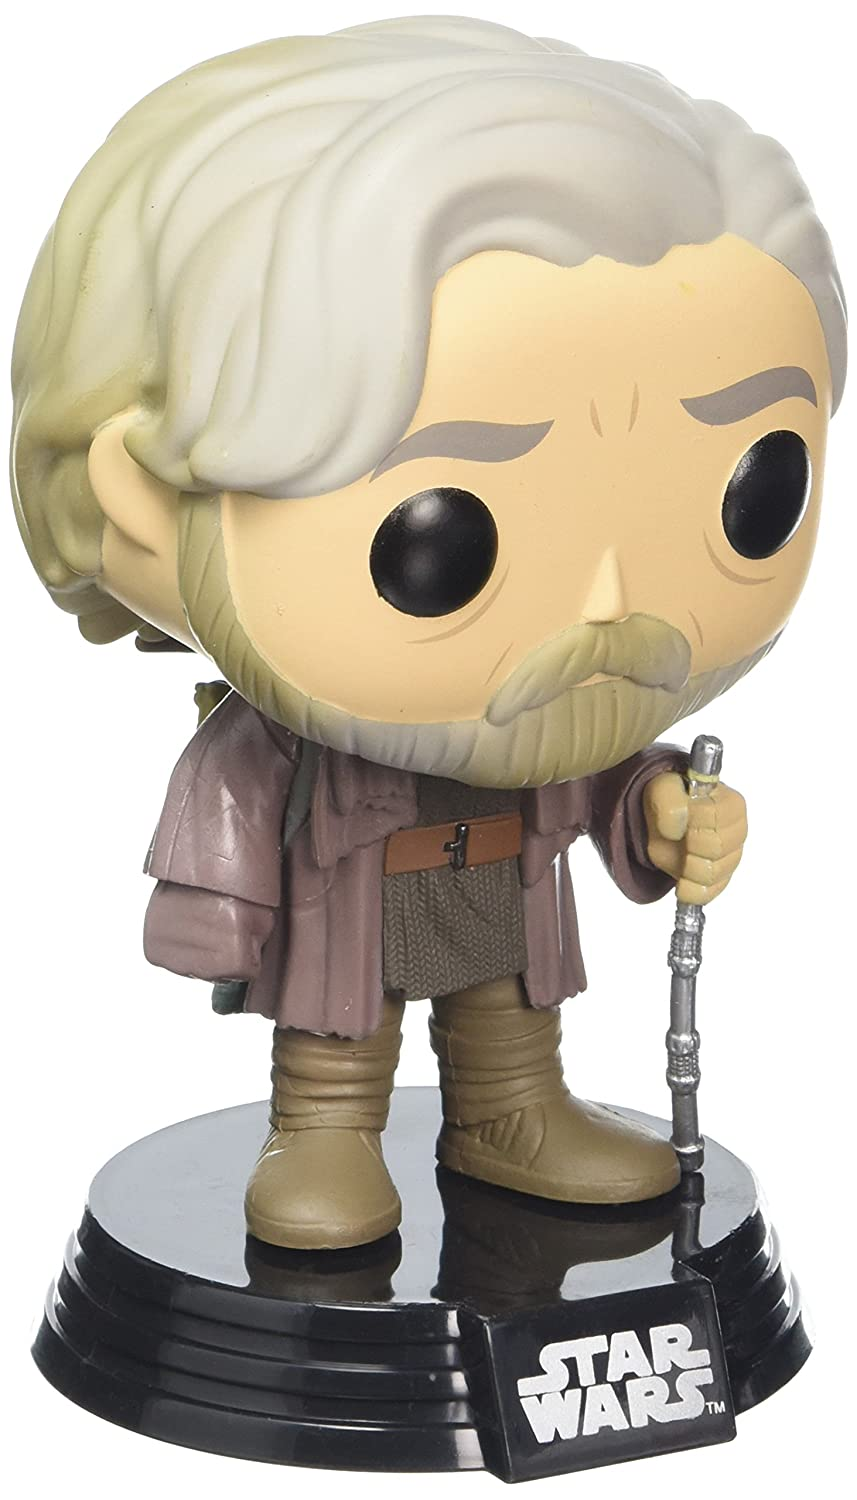 Funko POP! Star Wars: The Last Jedi - Luke Skywalker